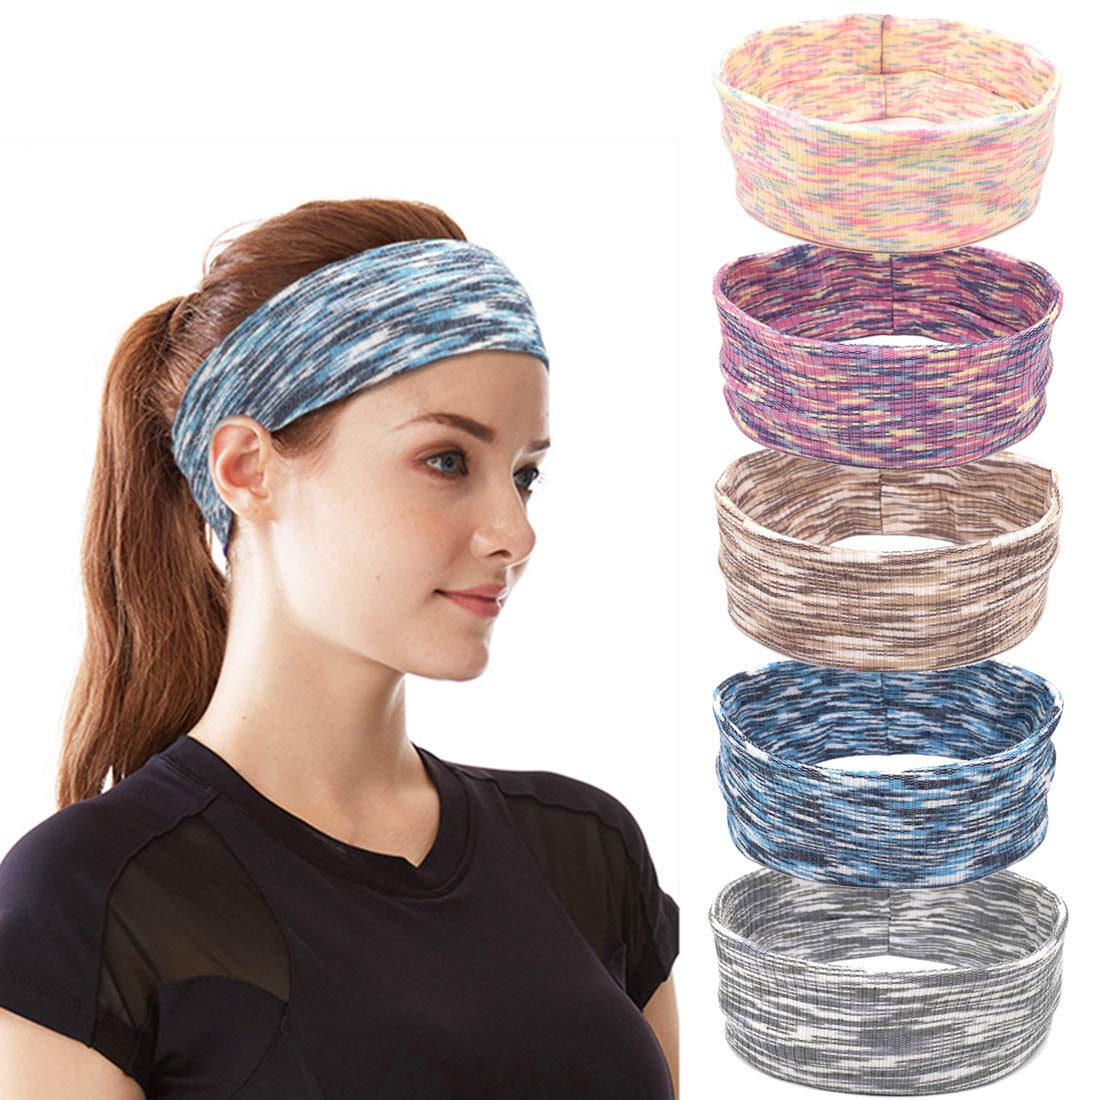 Meowoo Running Sport Sweatband 5Pcs Unisex Elastic Yoga Fitness Gym Head Band Hair Wrap Brace